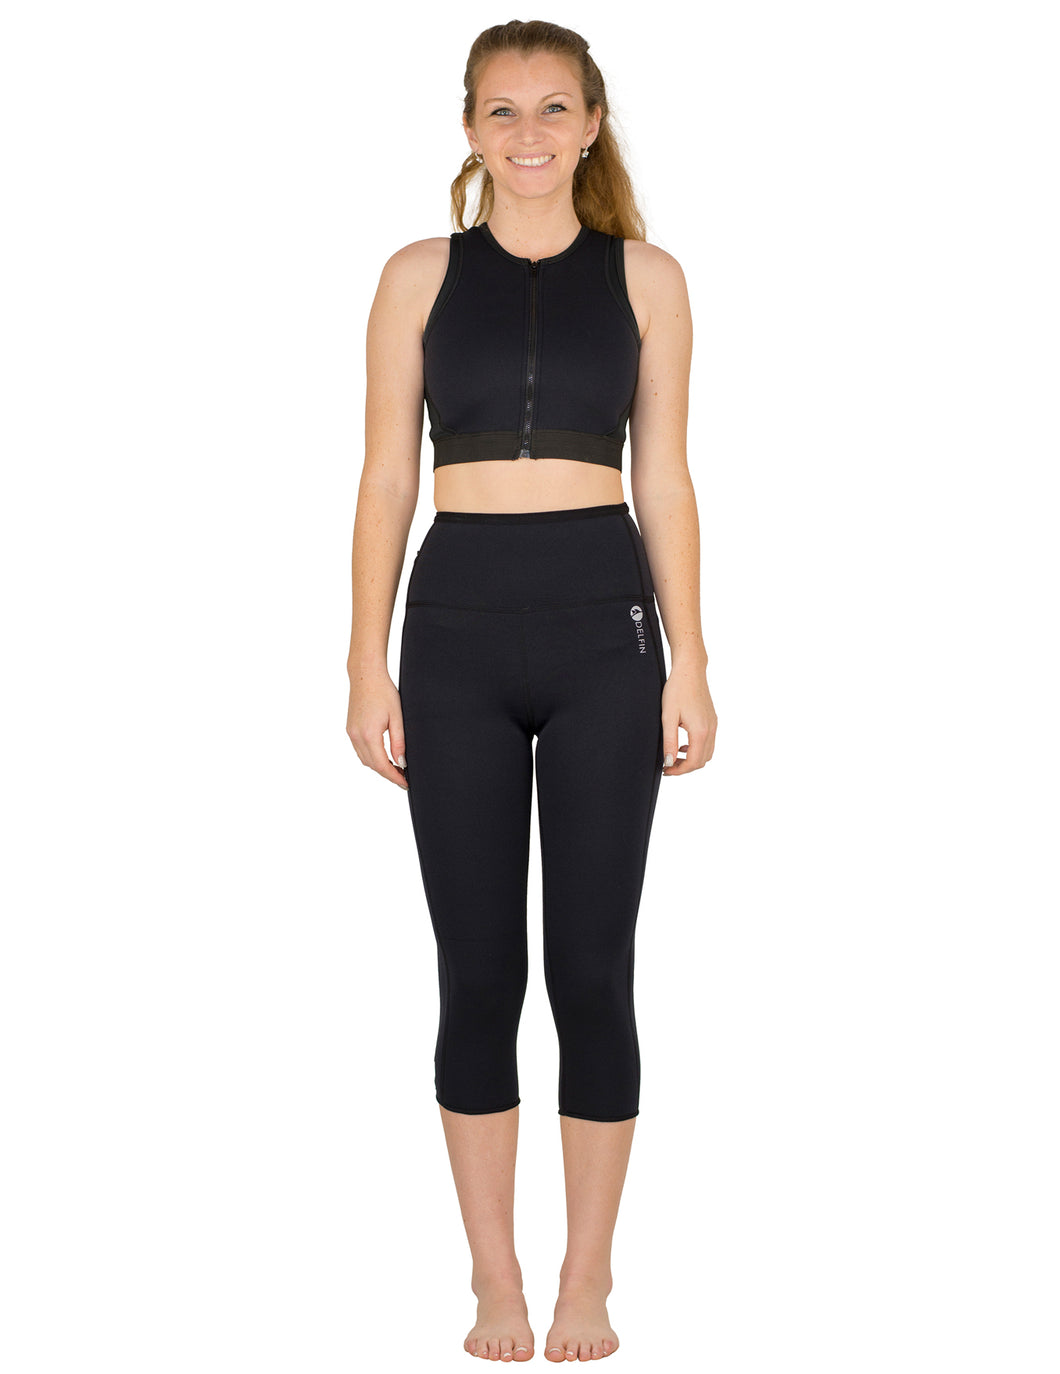 Heat Maximizing Capris - Black